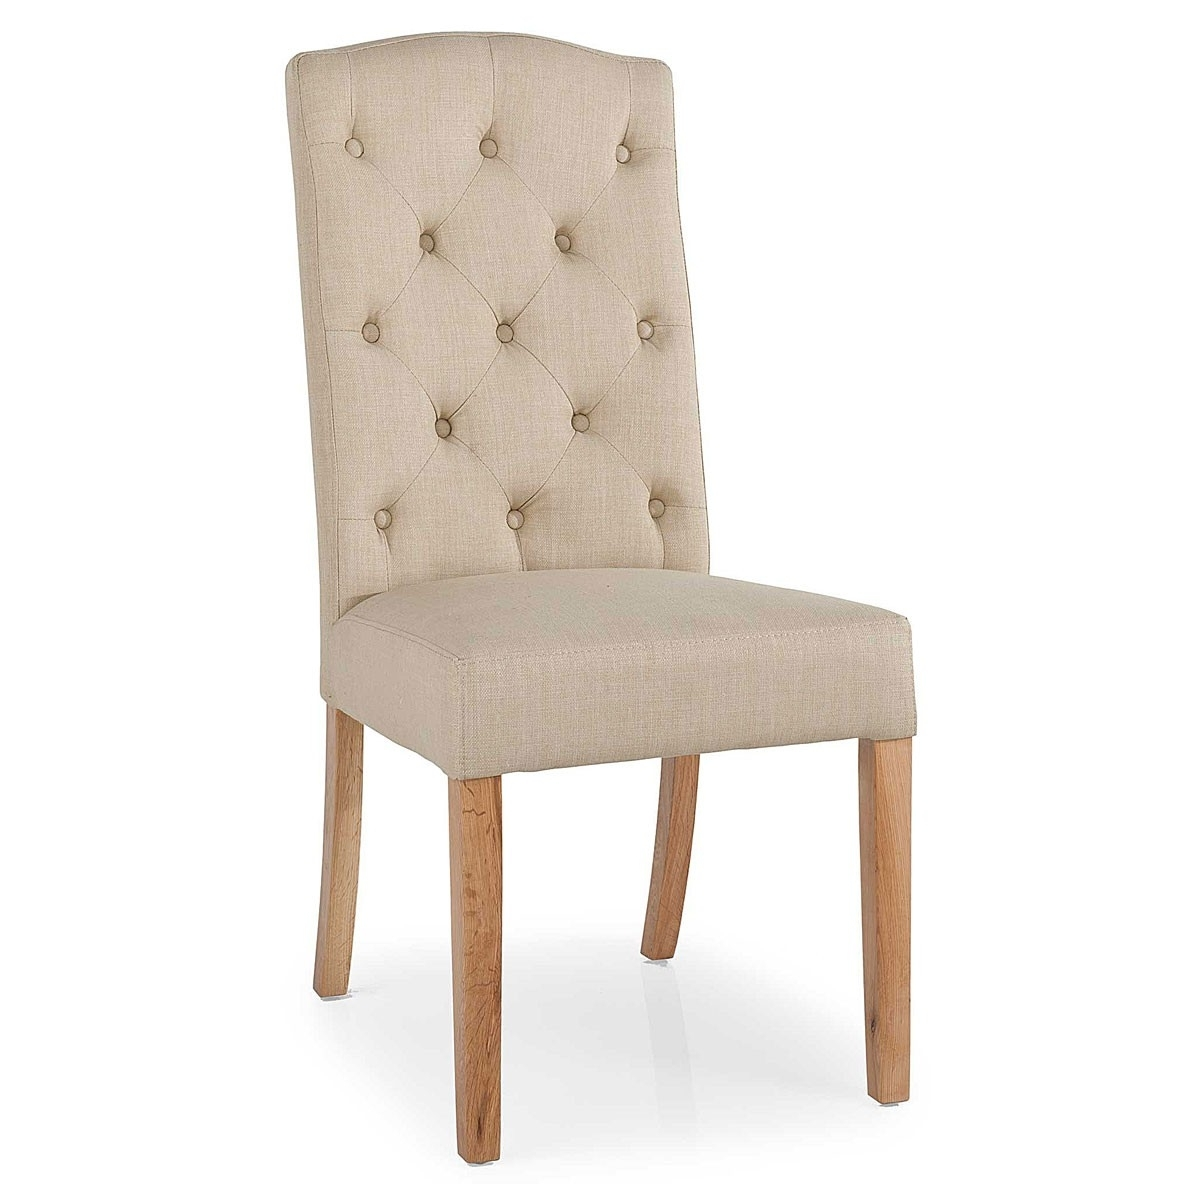 Upholstered French Style Dining Chairs with regard to Most Up-to-Date Button Back Dining Chairs